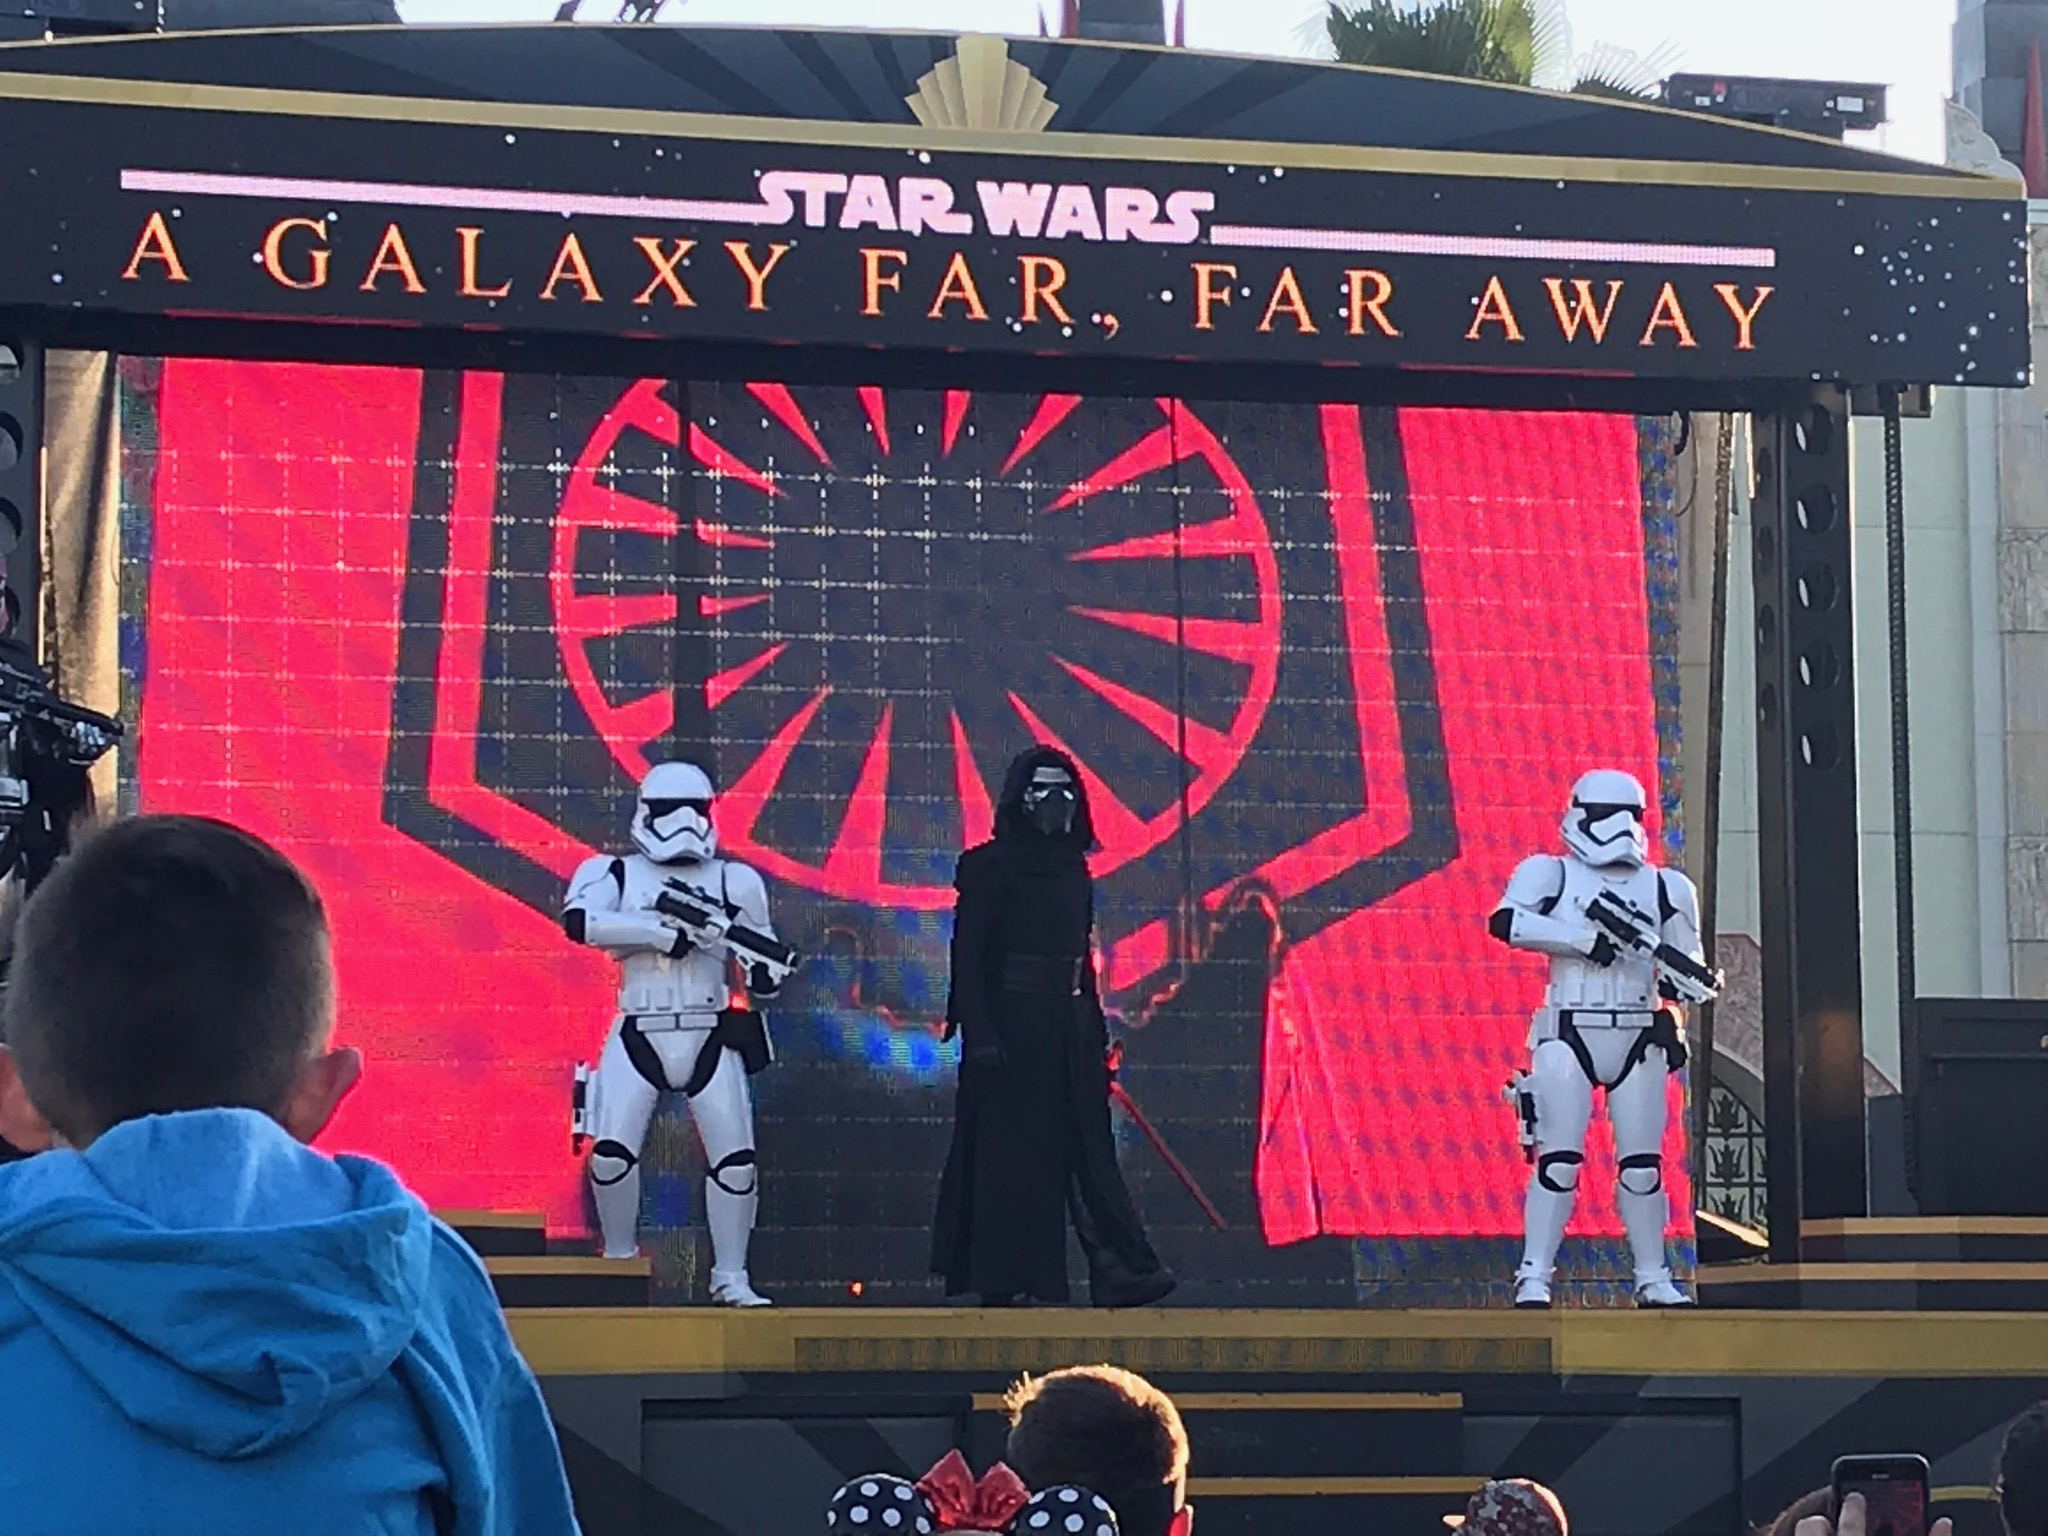 Hollywood Studios is packed to the gills with Star Wars paraphernalia these days. Can't imagine why.